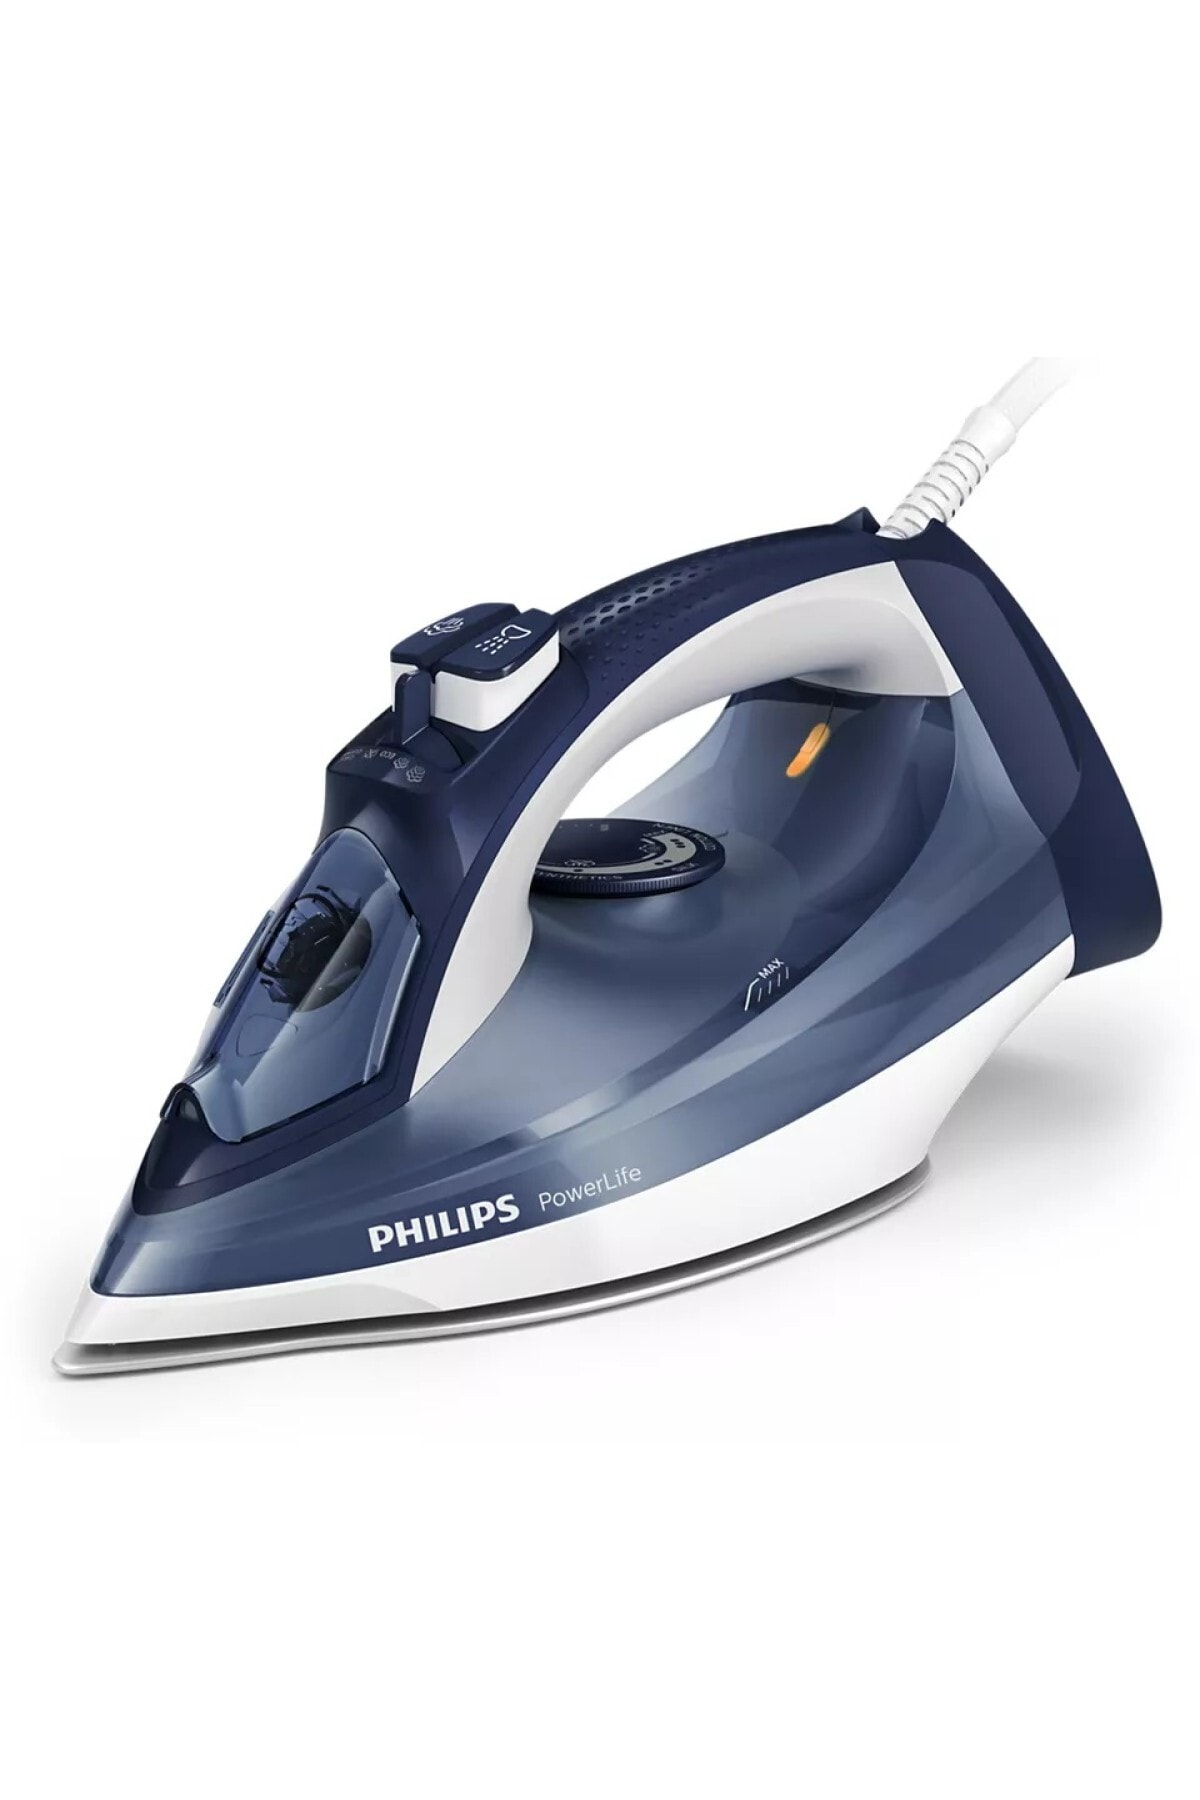 Philips Powerlife Buharlı Ütü  Gc2994/20 1